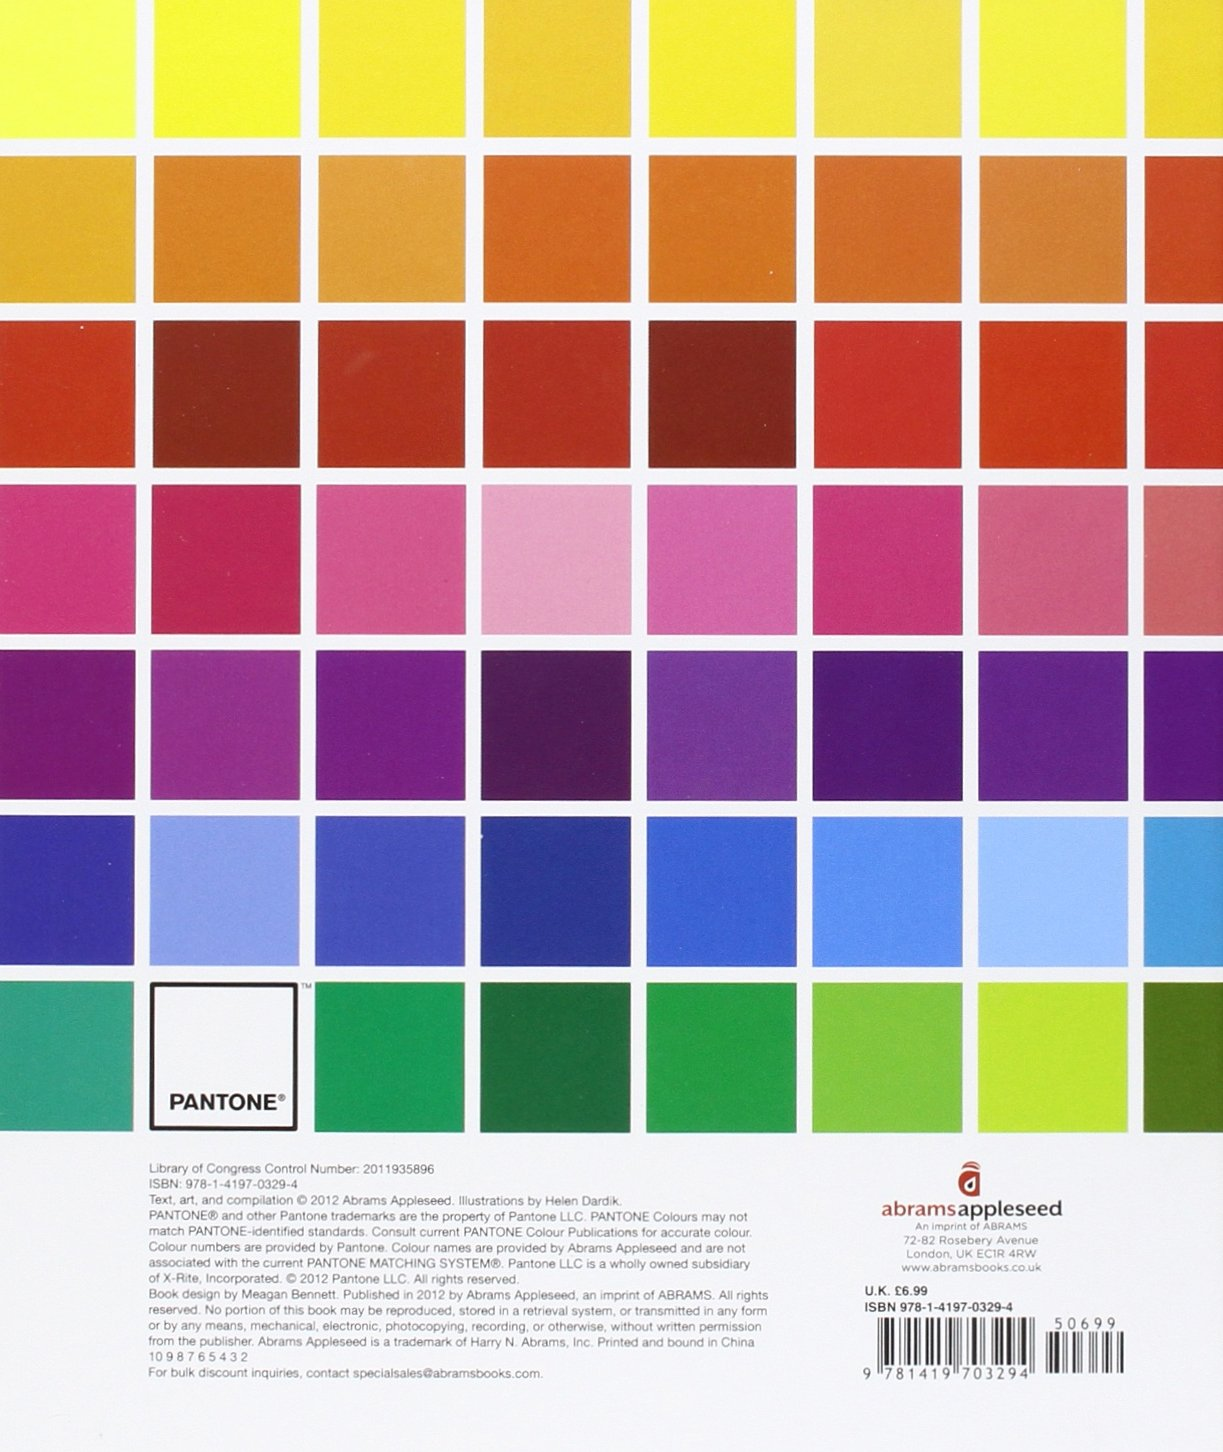 Pantone colours amazon pantone llc 9781419703294 books nvjuhfo Choice Image